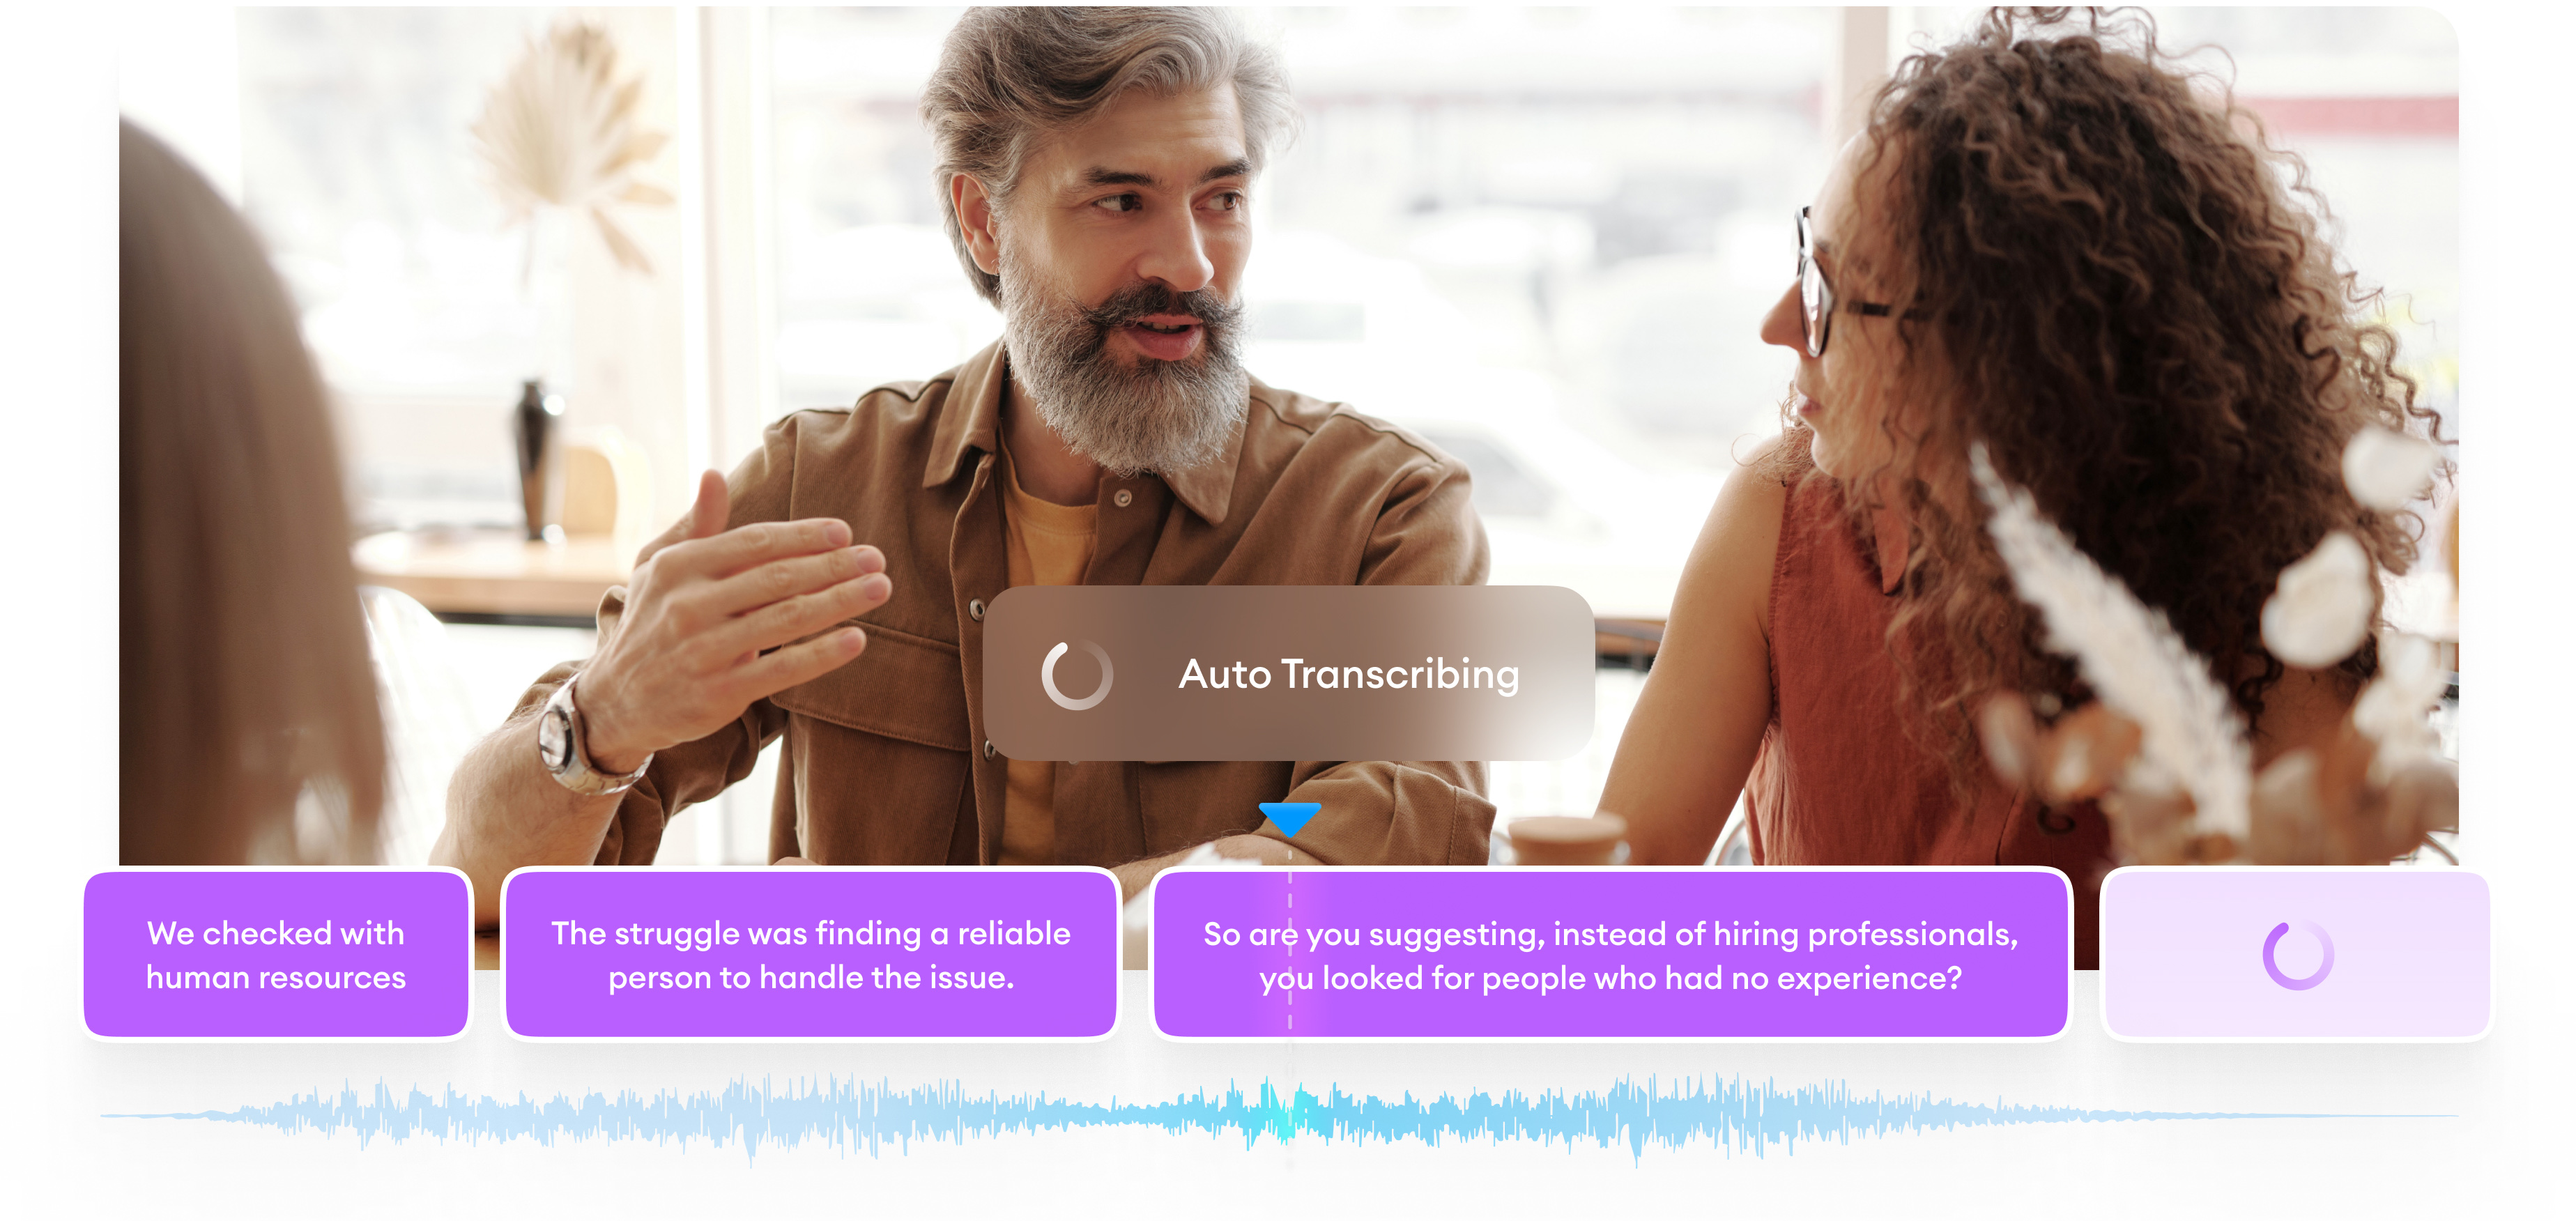 Automatically Transcribe Video to Text